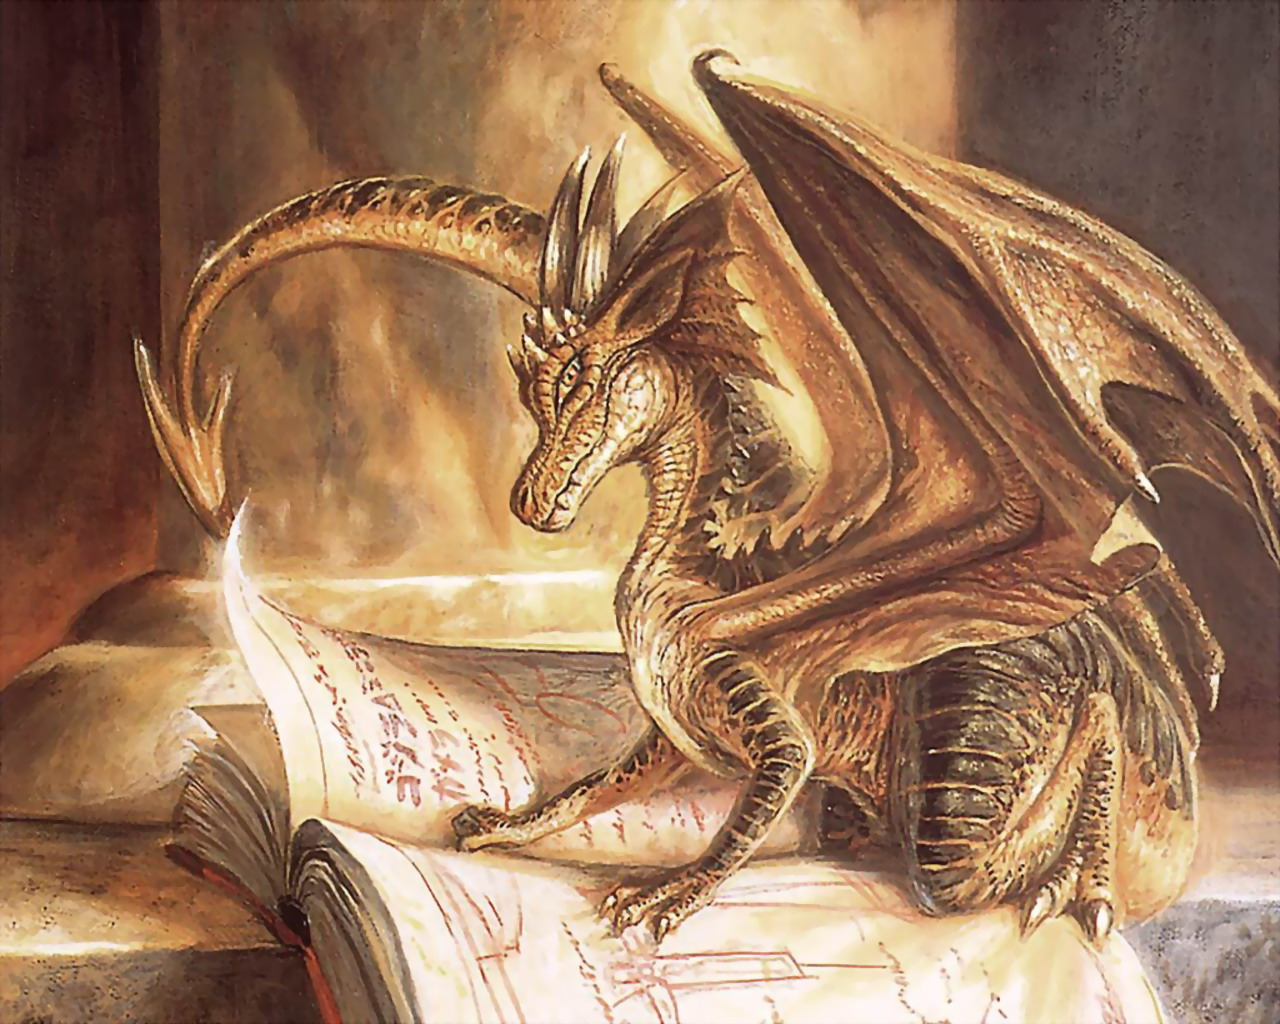 http://all-things-andy-gavin.com/wp-content/uploads/2012/09/Golden-Dragon-Reading-Book.jpg